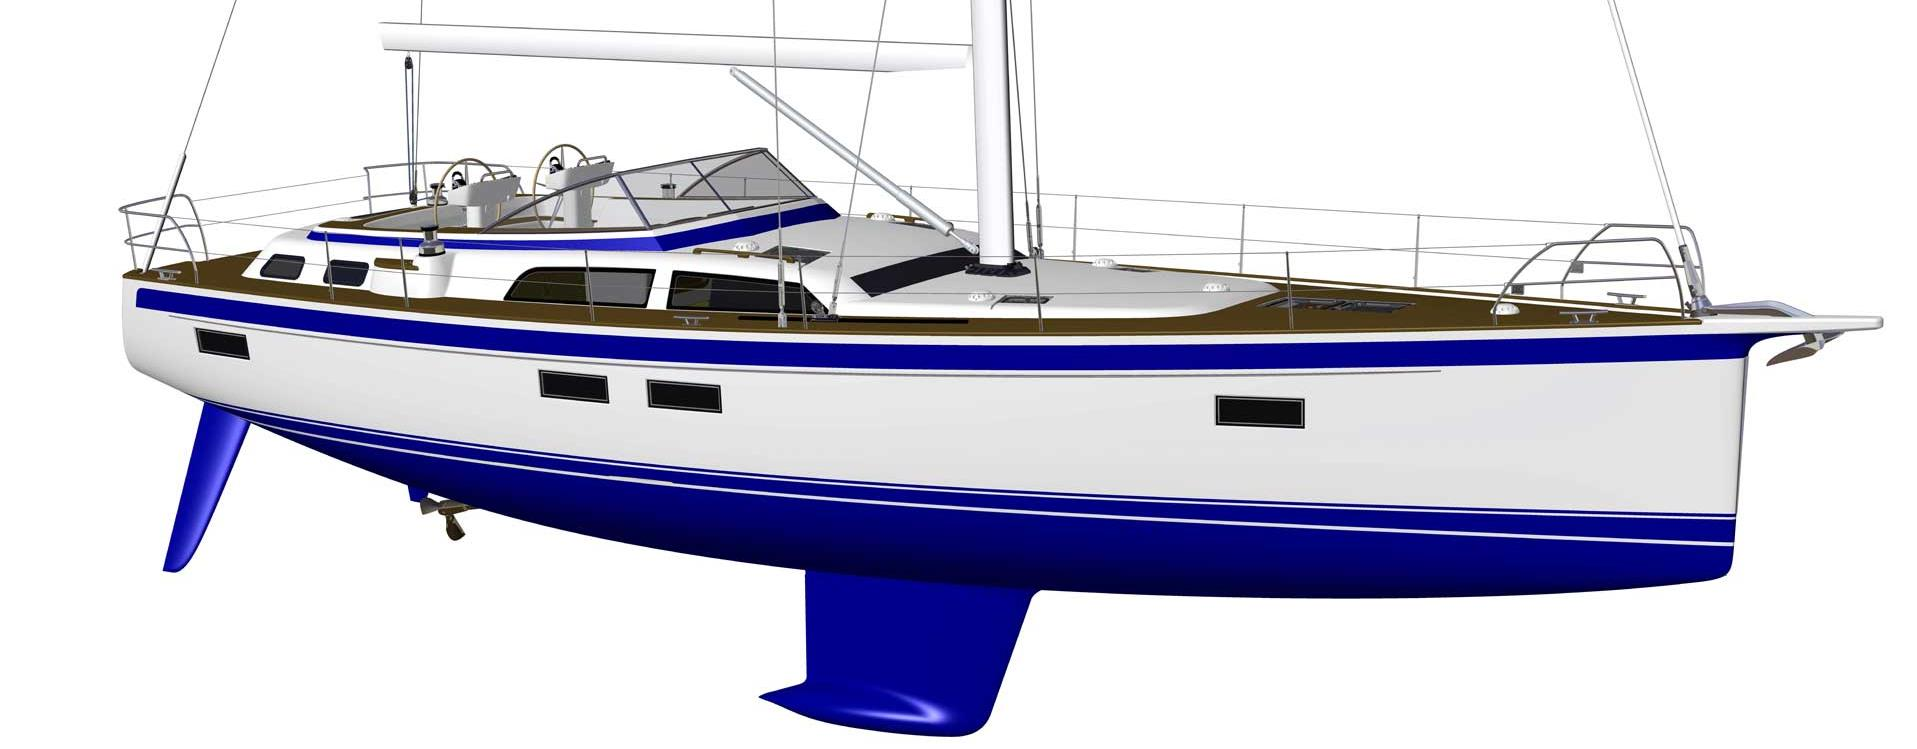 Hallberg-Rassy 50 will be in production at Open Yard